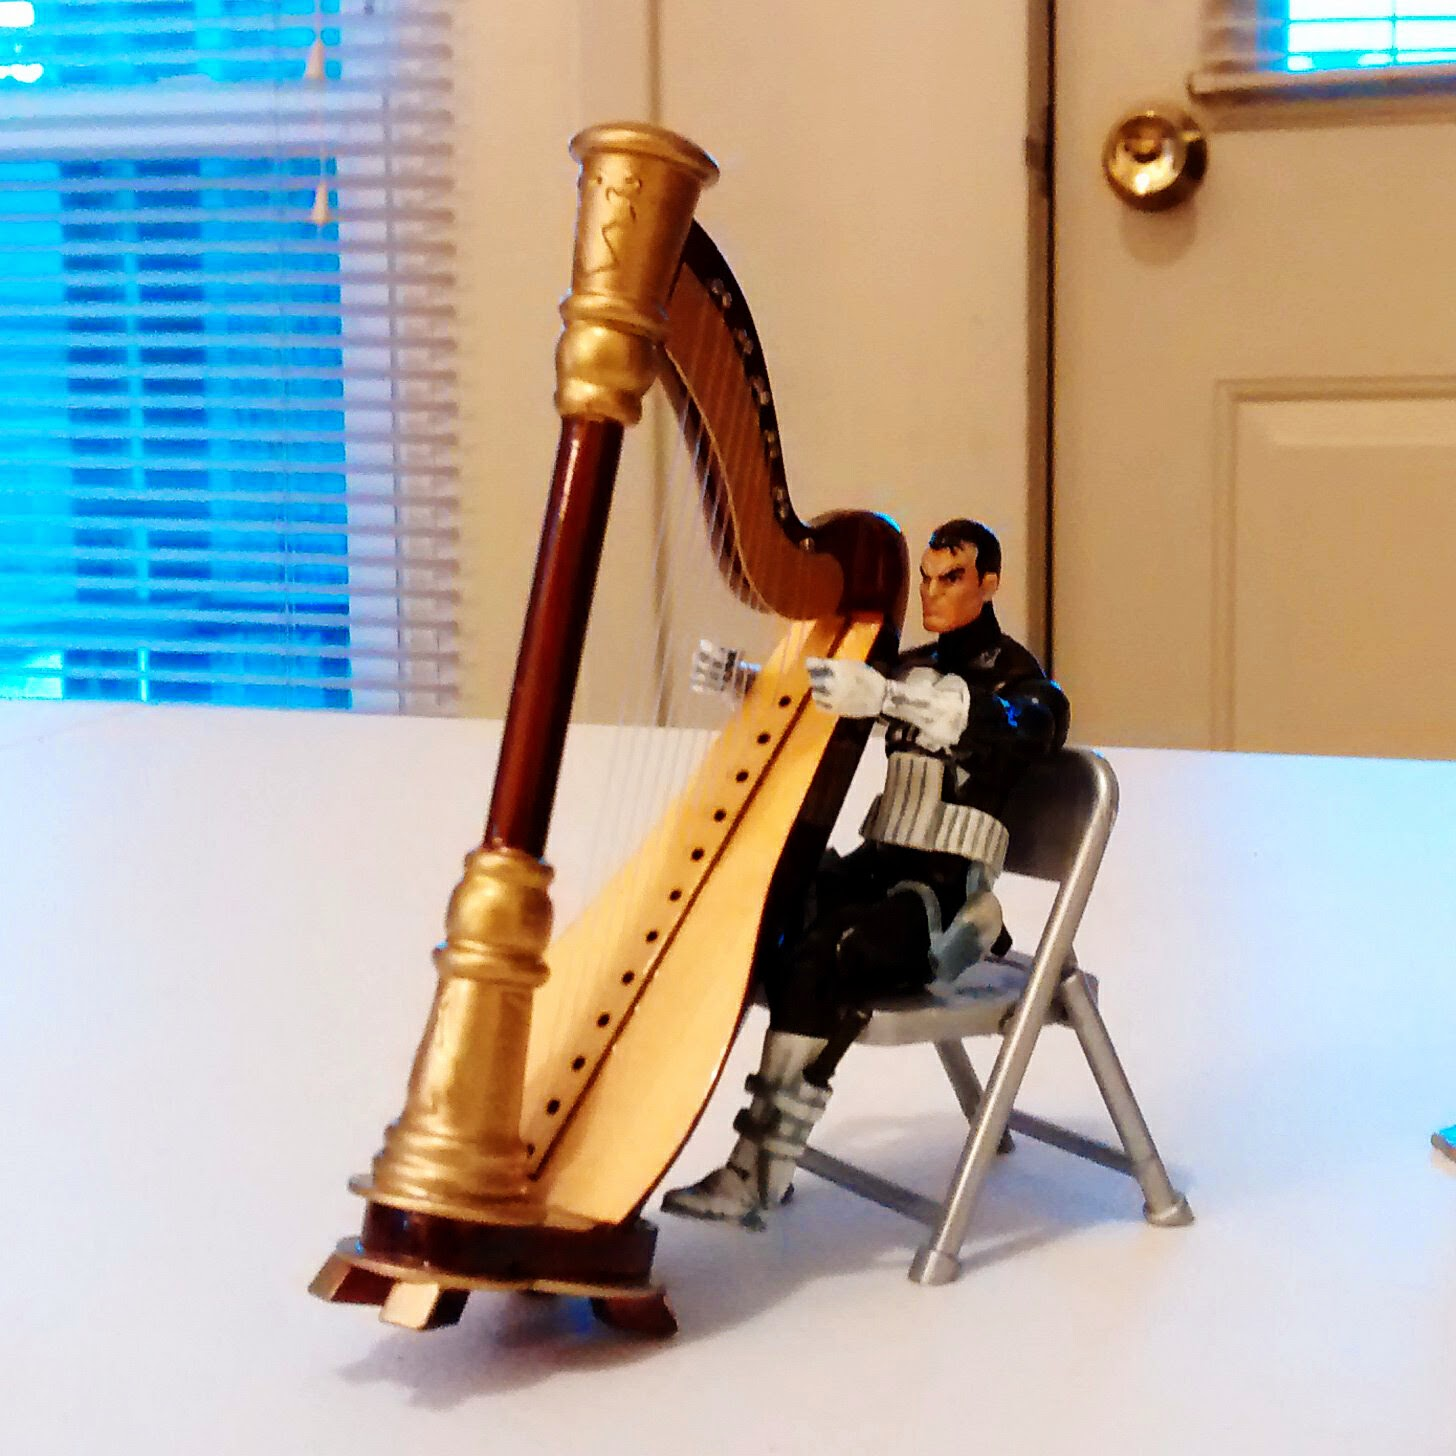 The Punisher can sit and play his harp after all!